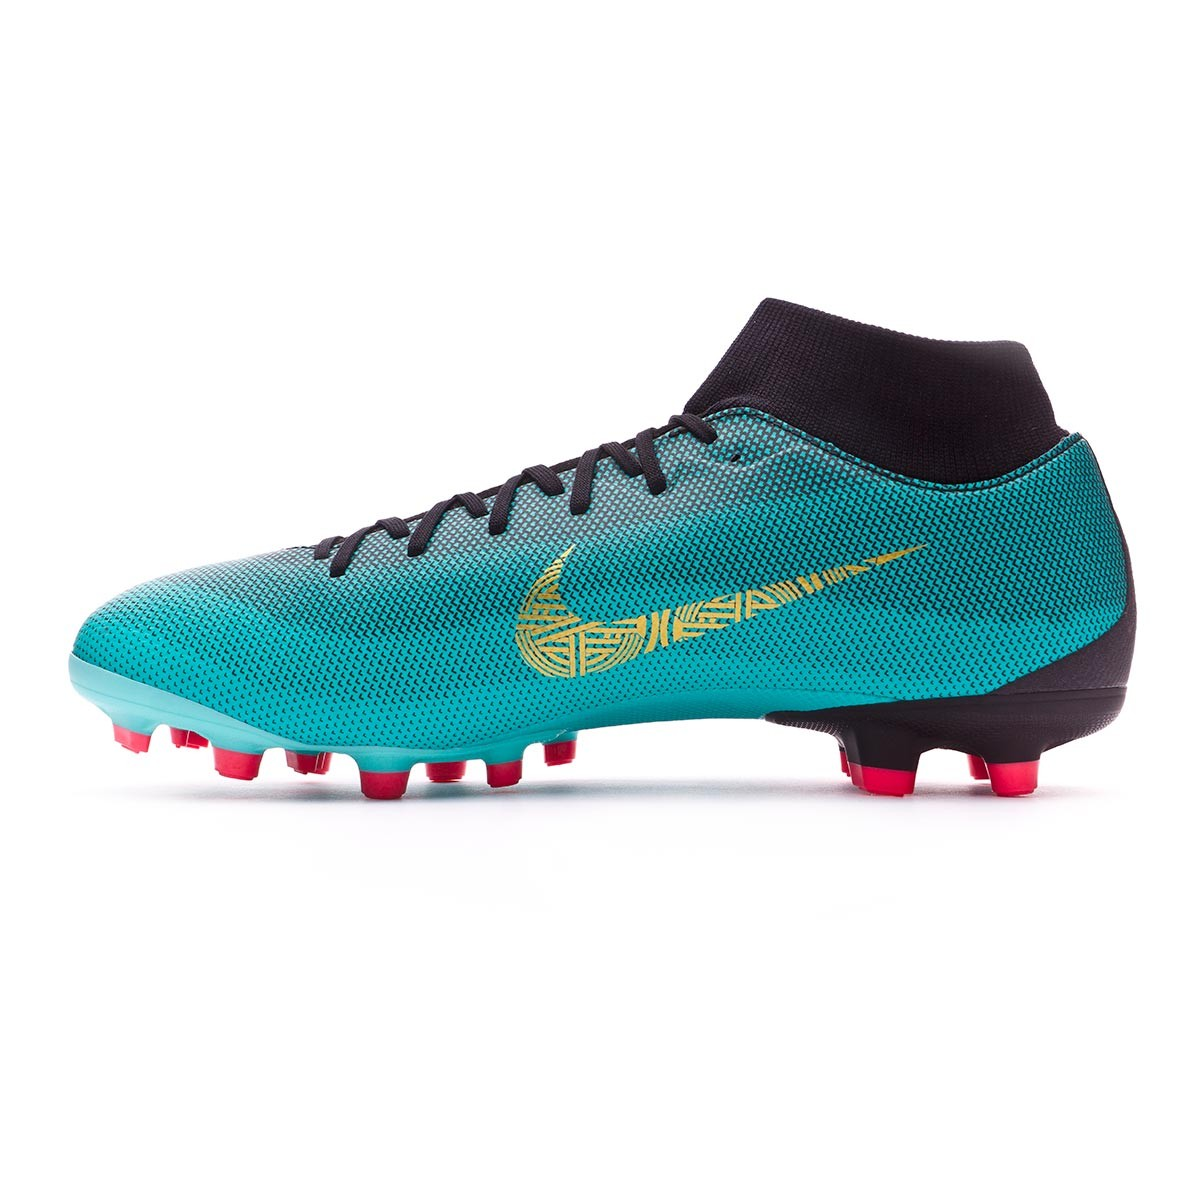 bf9605337a7d Football Boots Nike Mercurial Superfly VI Academy CR7 MG Clear jade-Metallic  vivid gold-Black - Tienda de fútbol Fútbol Emotion